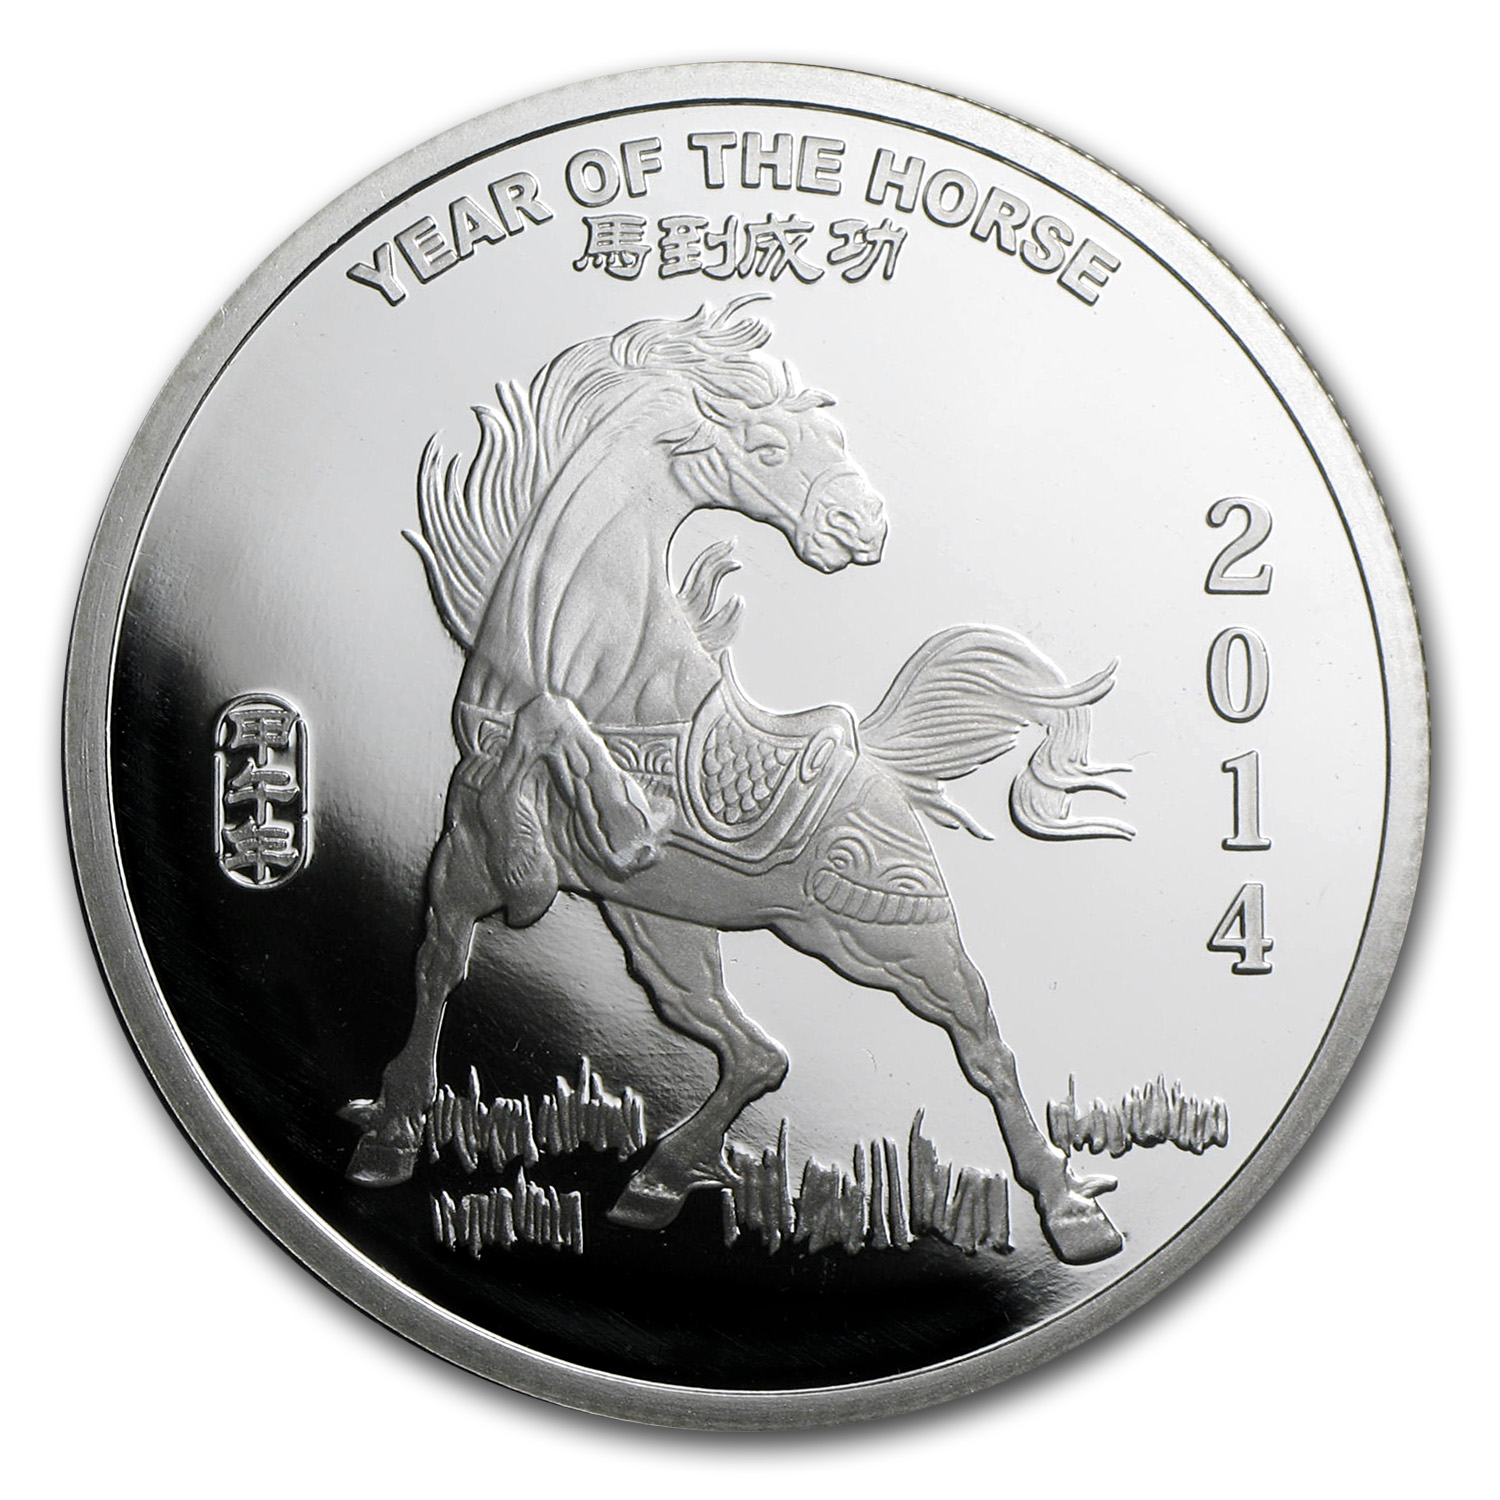 1 oz Silver Rounds - APMEX (2014 Year of the Horse)